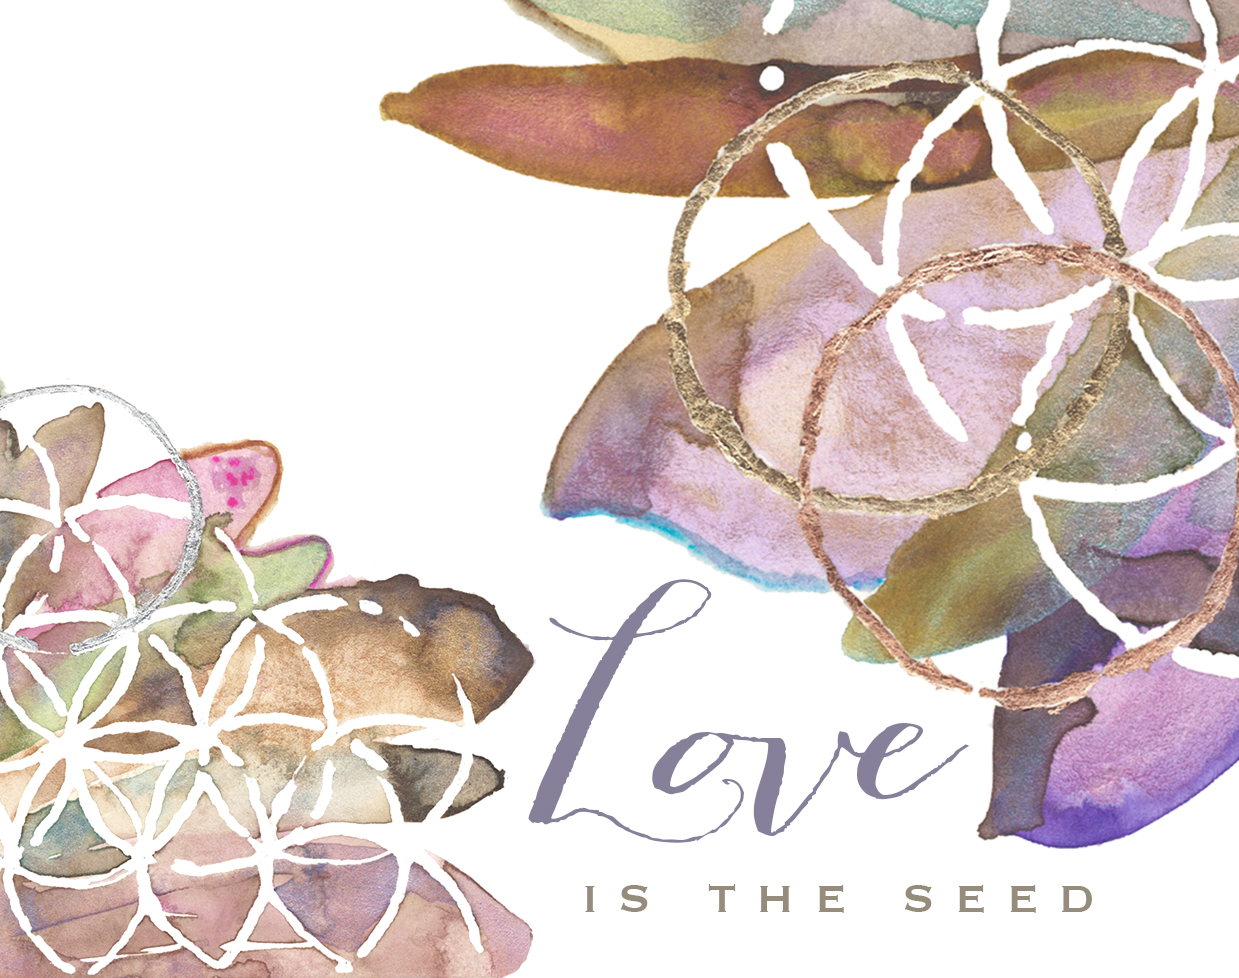 Love-is-the-seed-cover.jpg